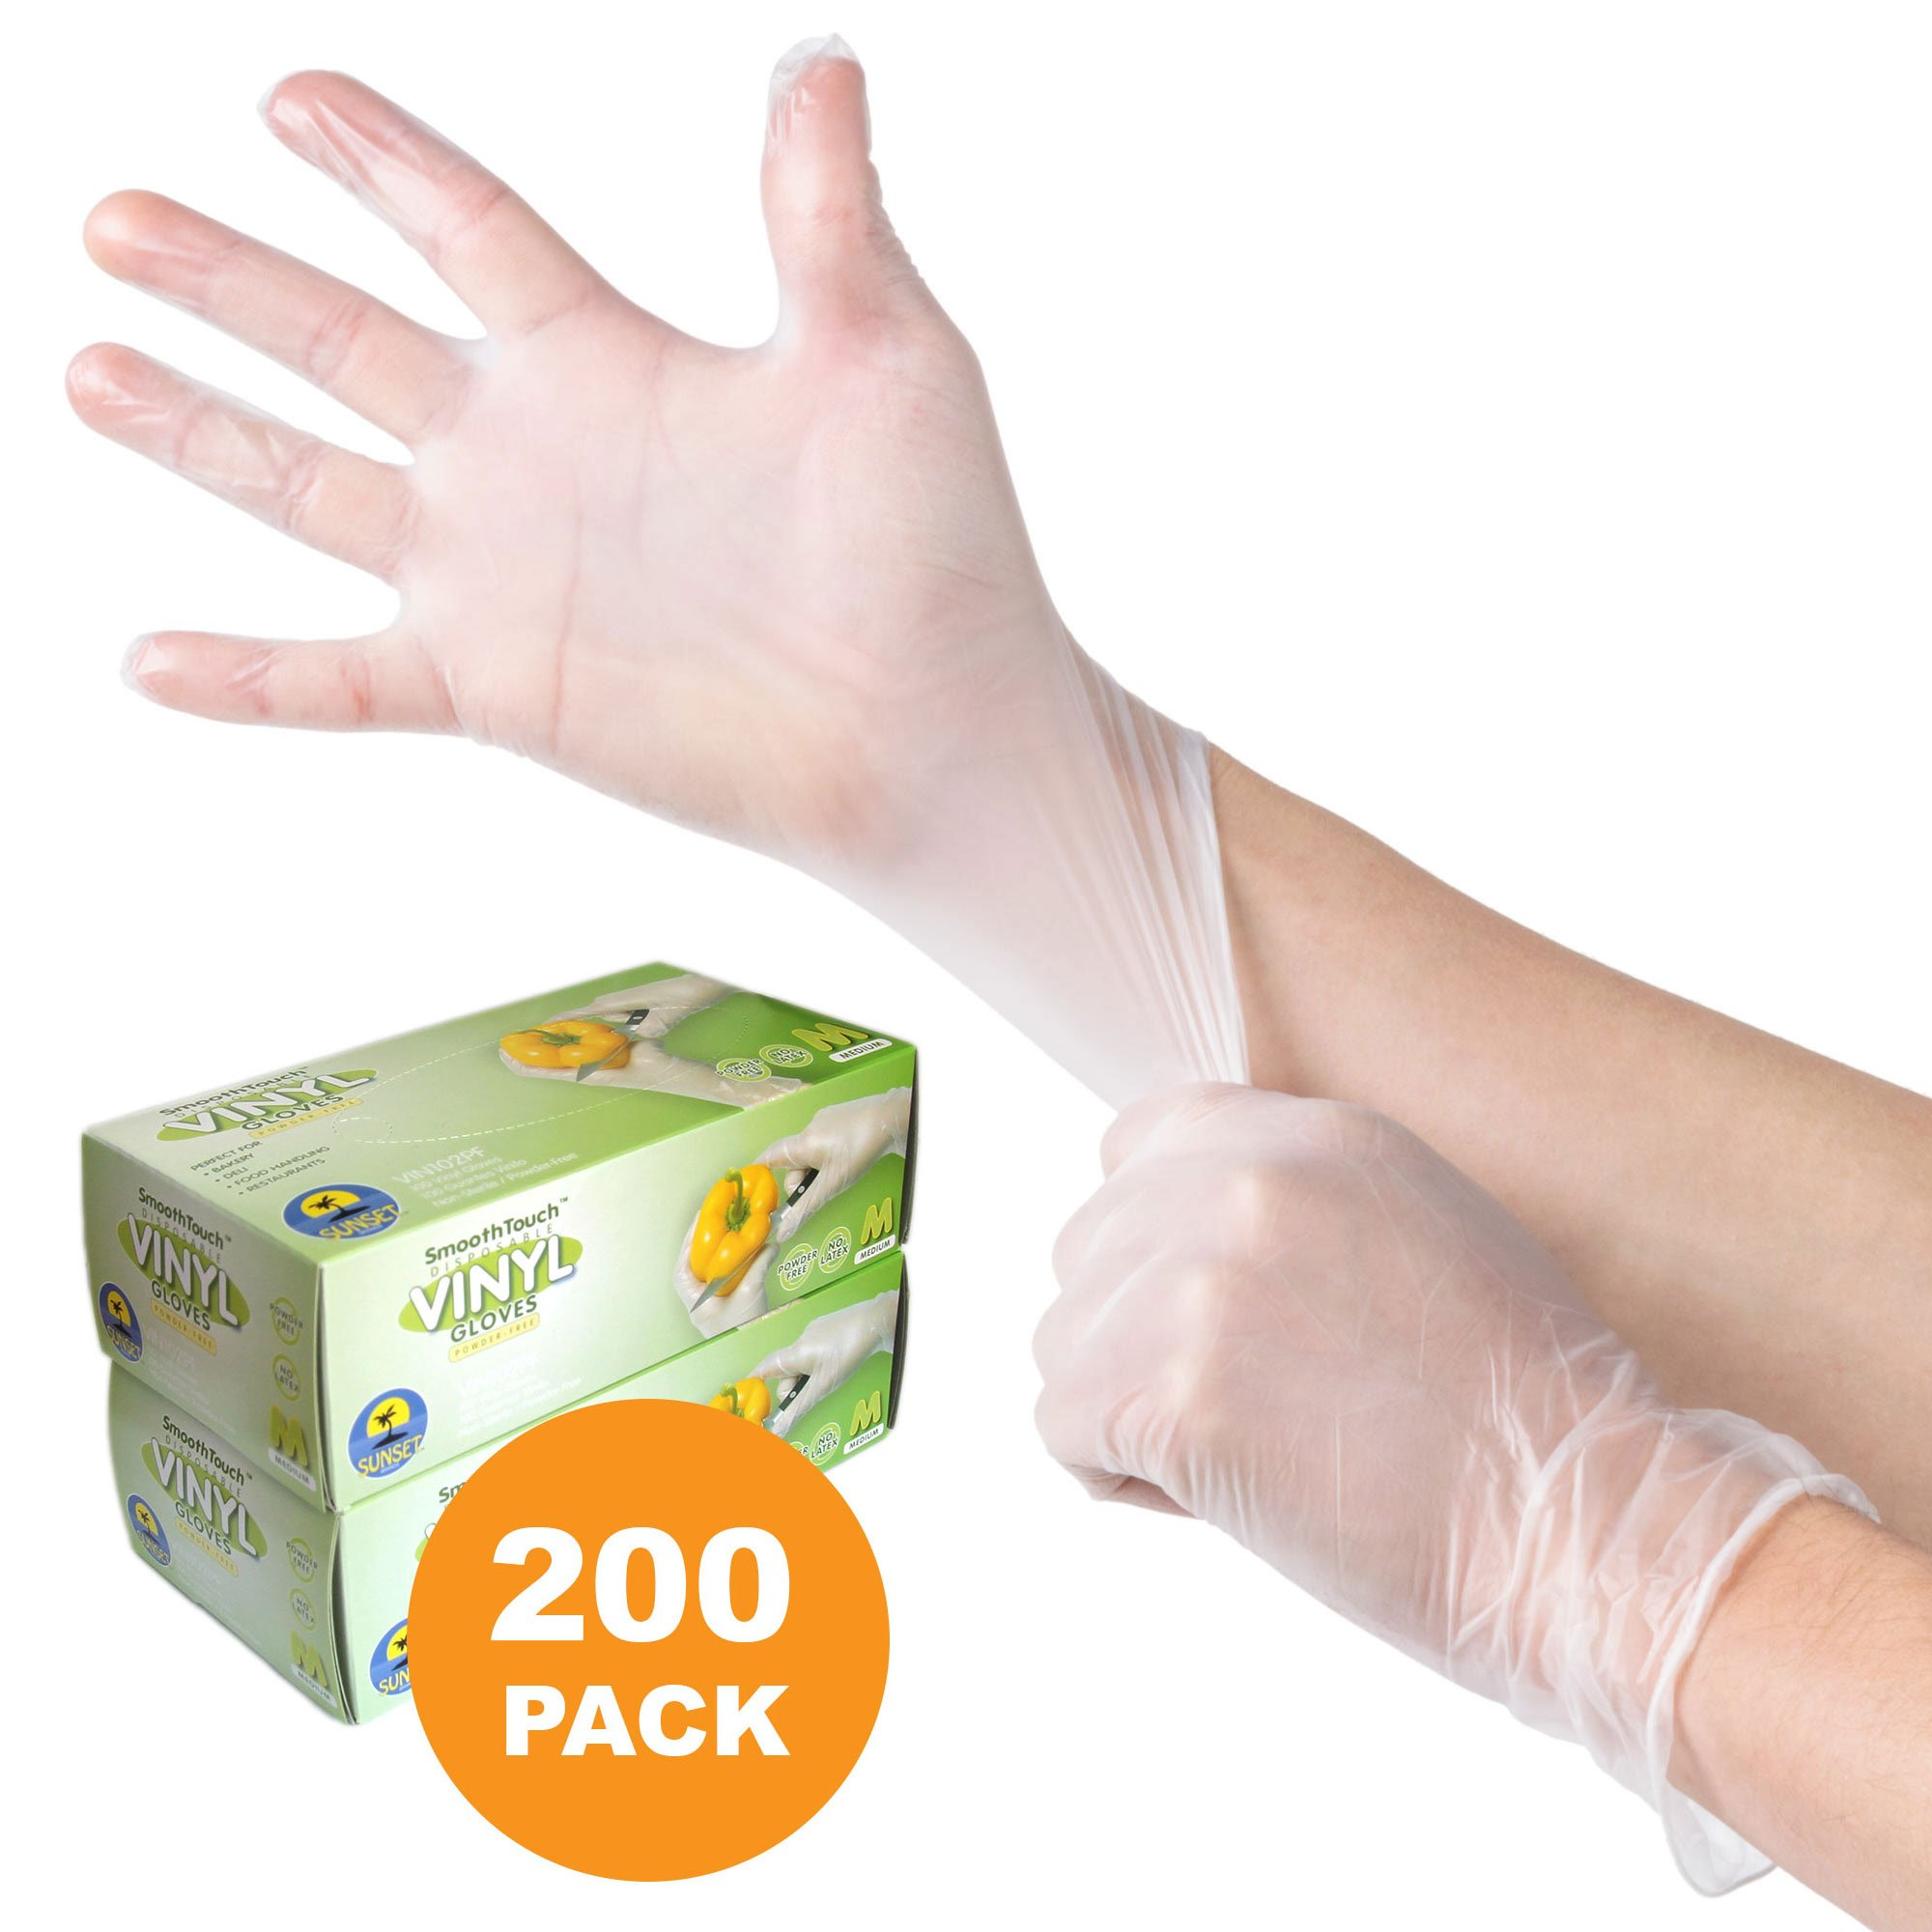 200 Powdered Disposable Vinyl Gloves, Non-Sterile, Easy Slip On/Off, Smooth Touch, Food Service Grade, X Large Size [2x100 Pack]